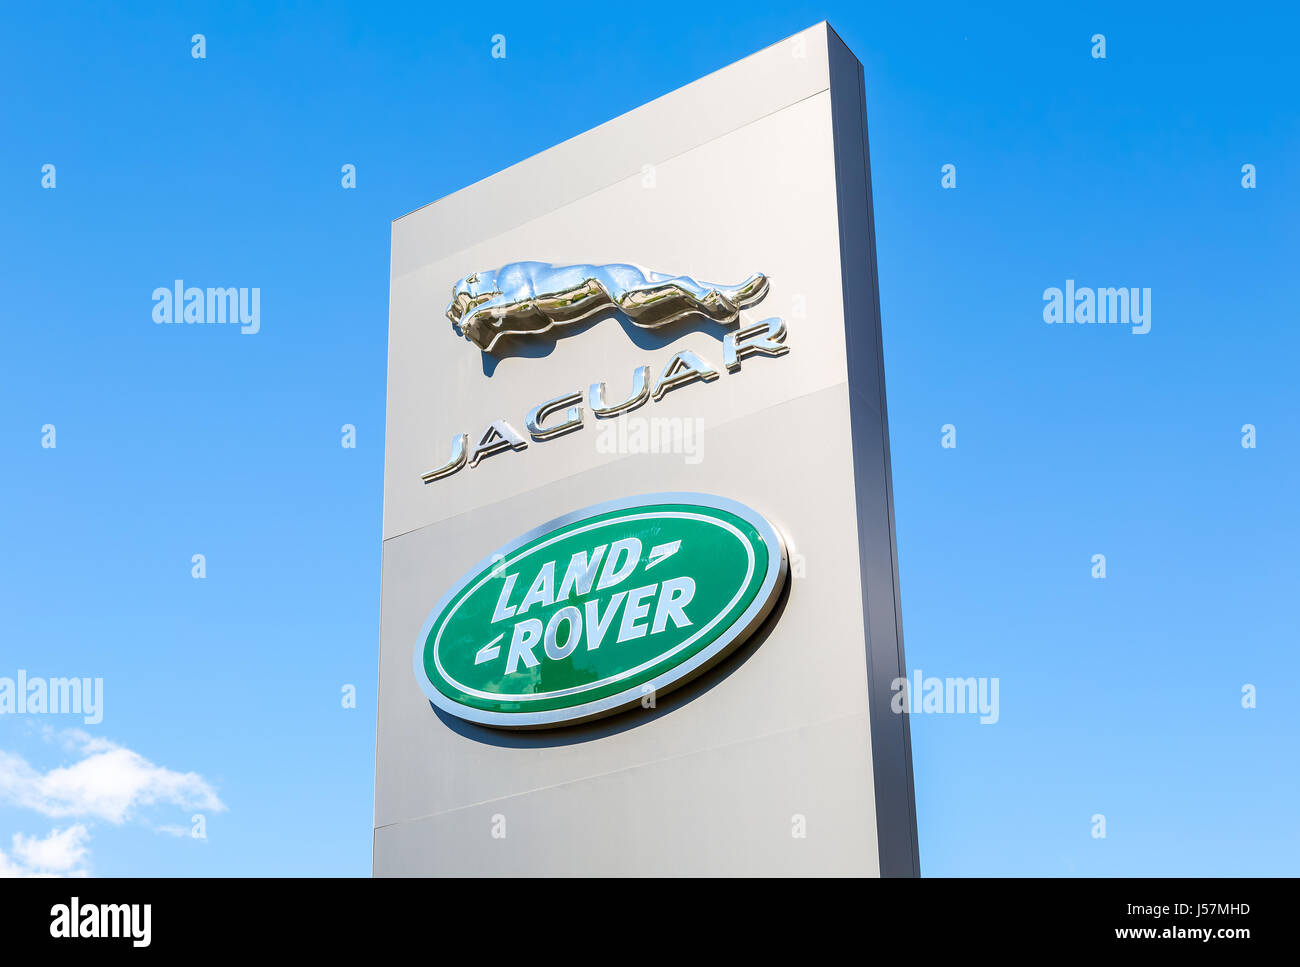 tata jaguar and land rover deal valuation Under tata ownership, jaguar land rover has launched new vehicles the initiative will be a partnership between tata motors, the university, and jaguar land.